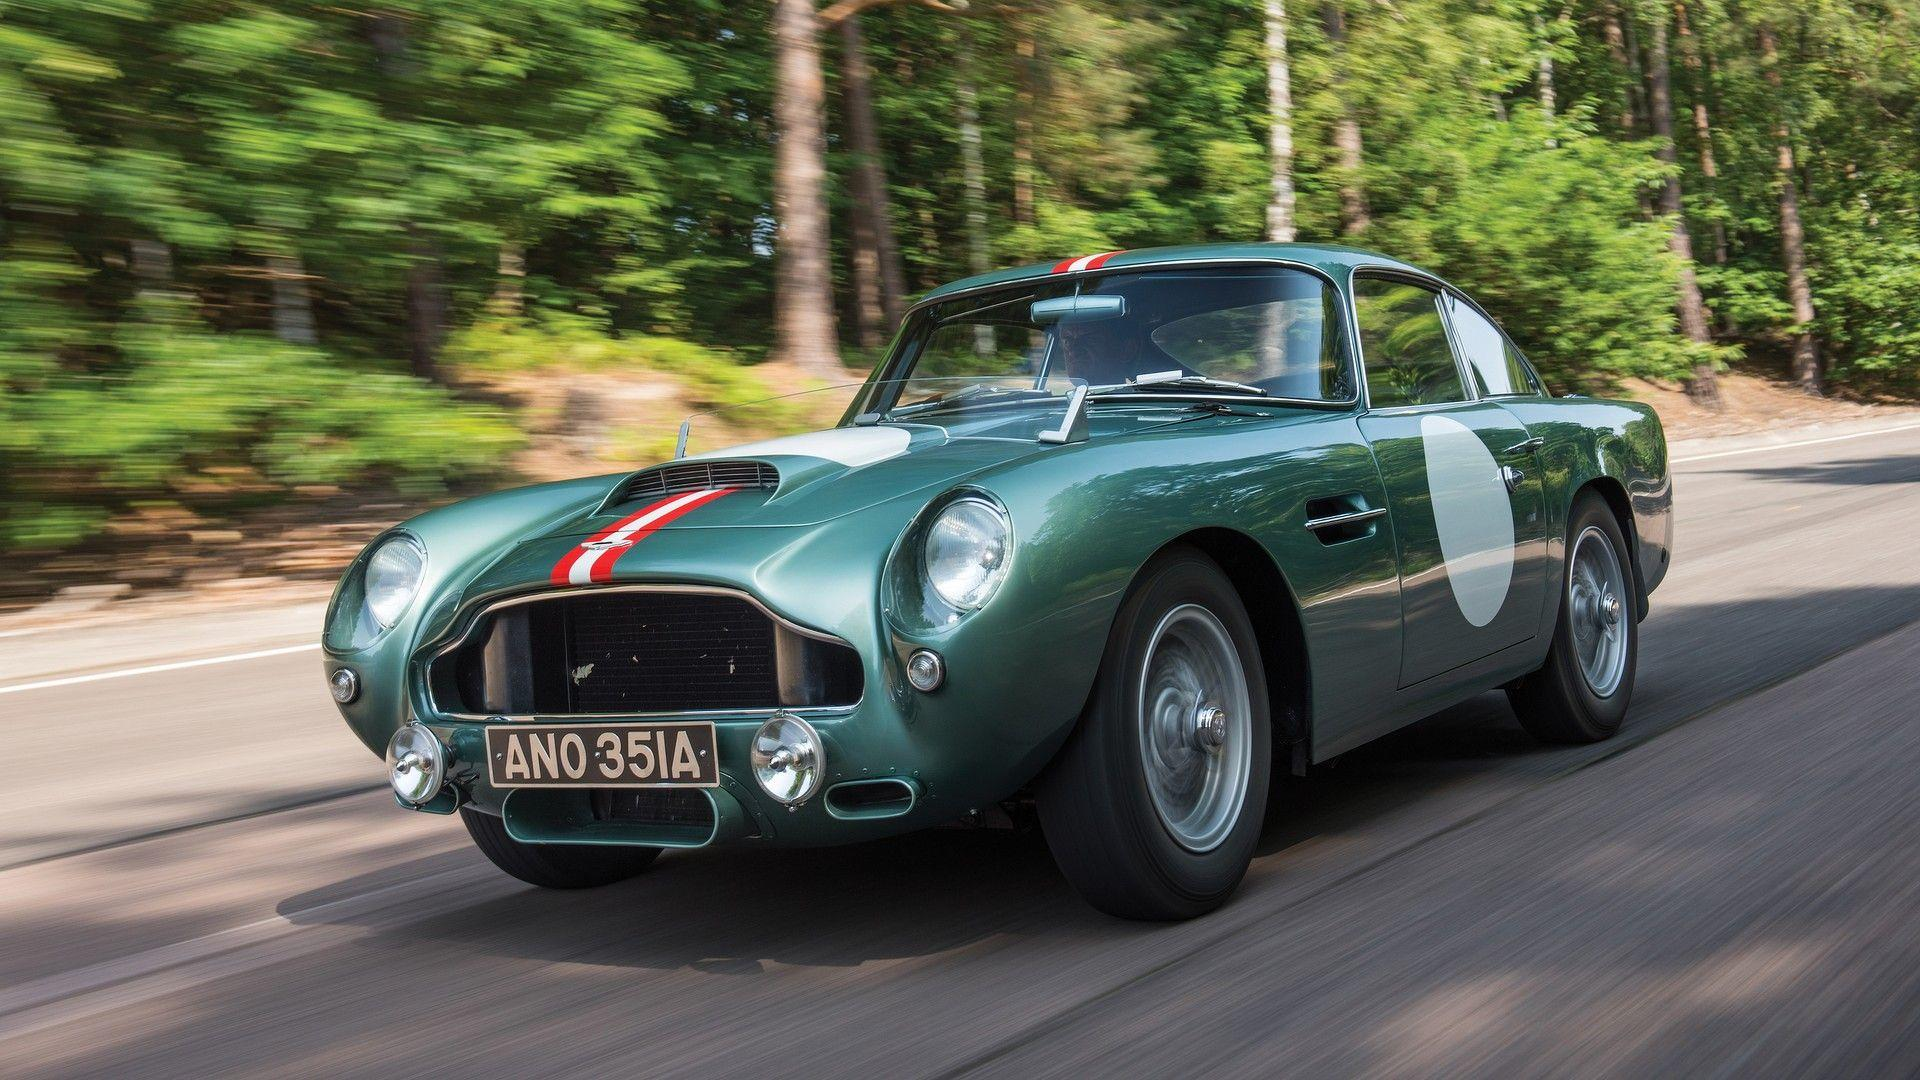 1959-aston-martin-db4gt-copyright-tim-scott-rm-sothebys (7)